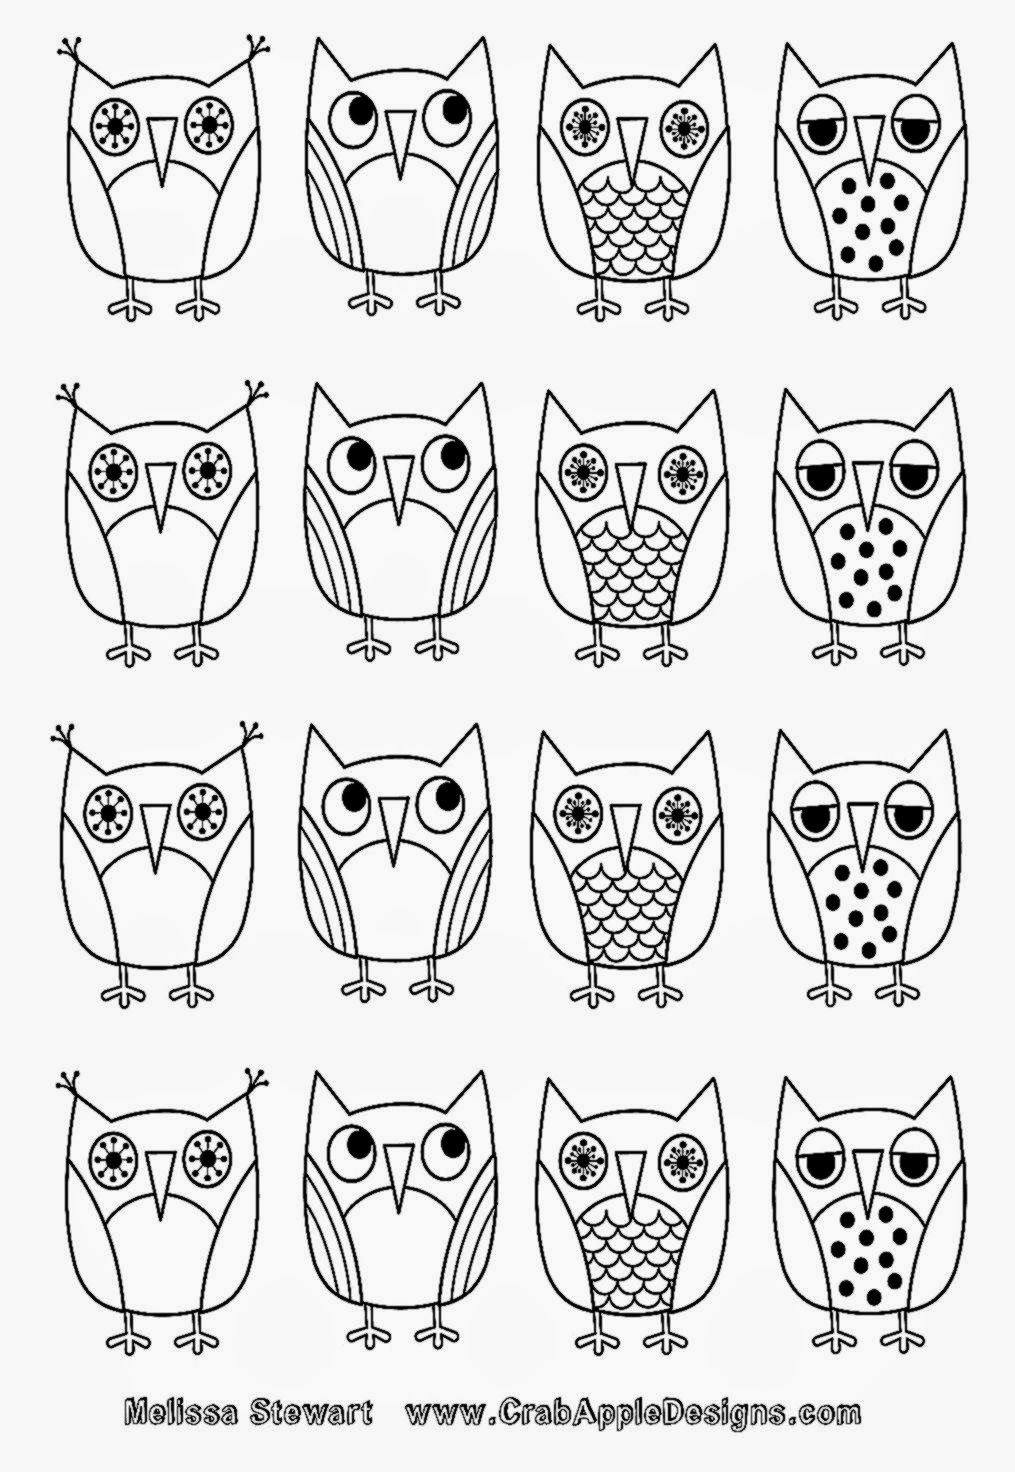 Pics For Gt Coloring Pages Adults Difficult Owls